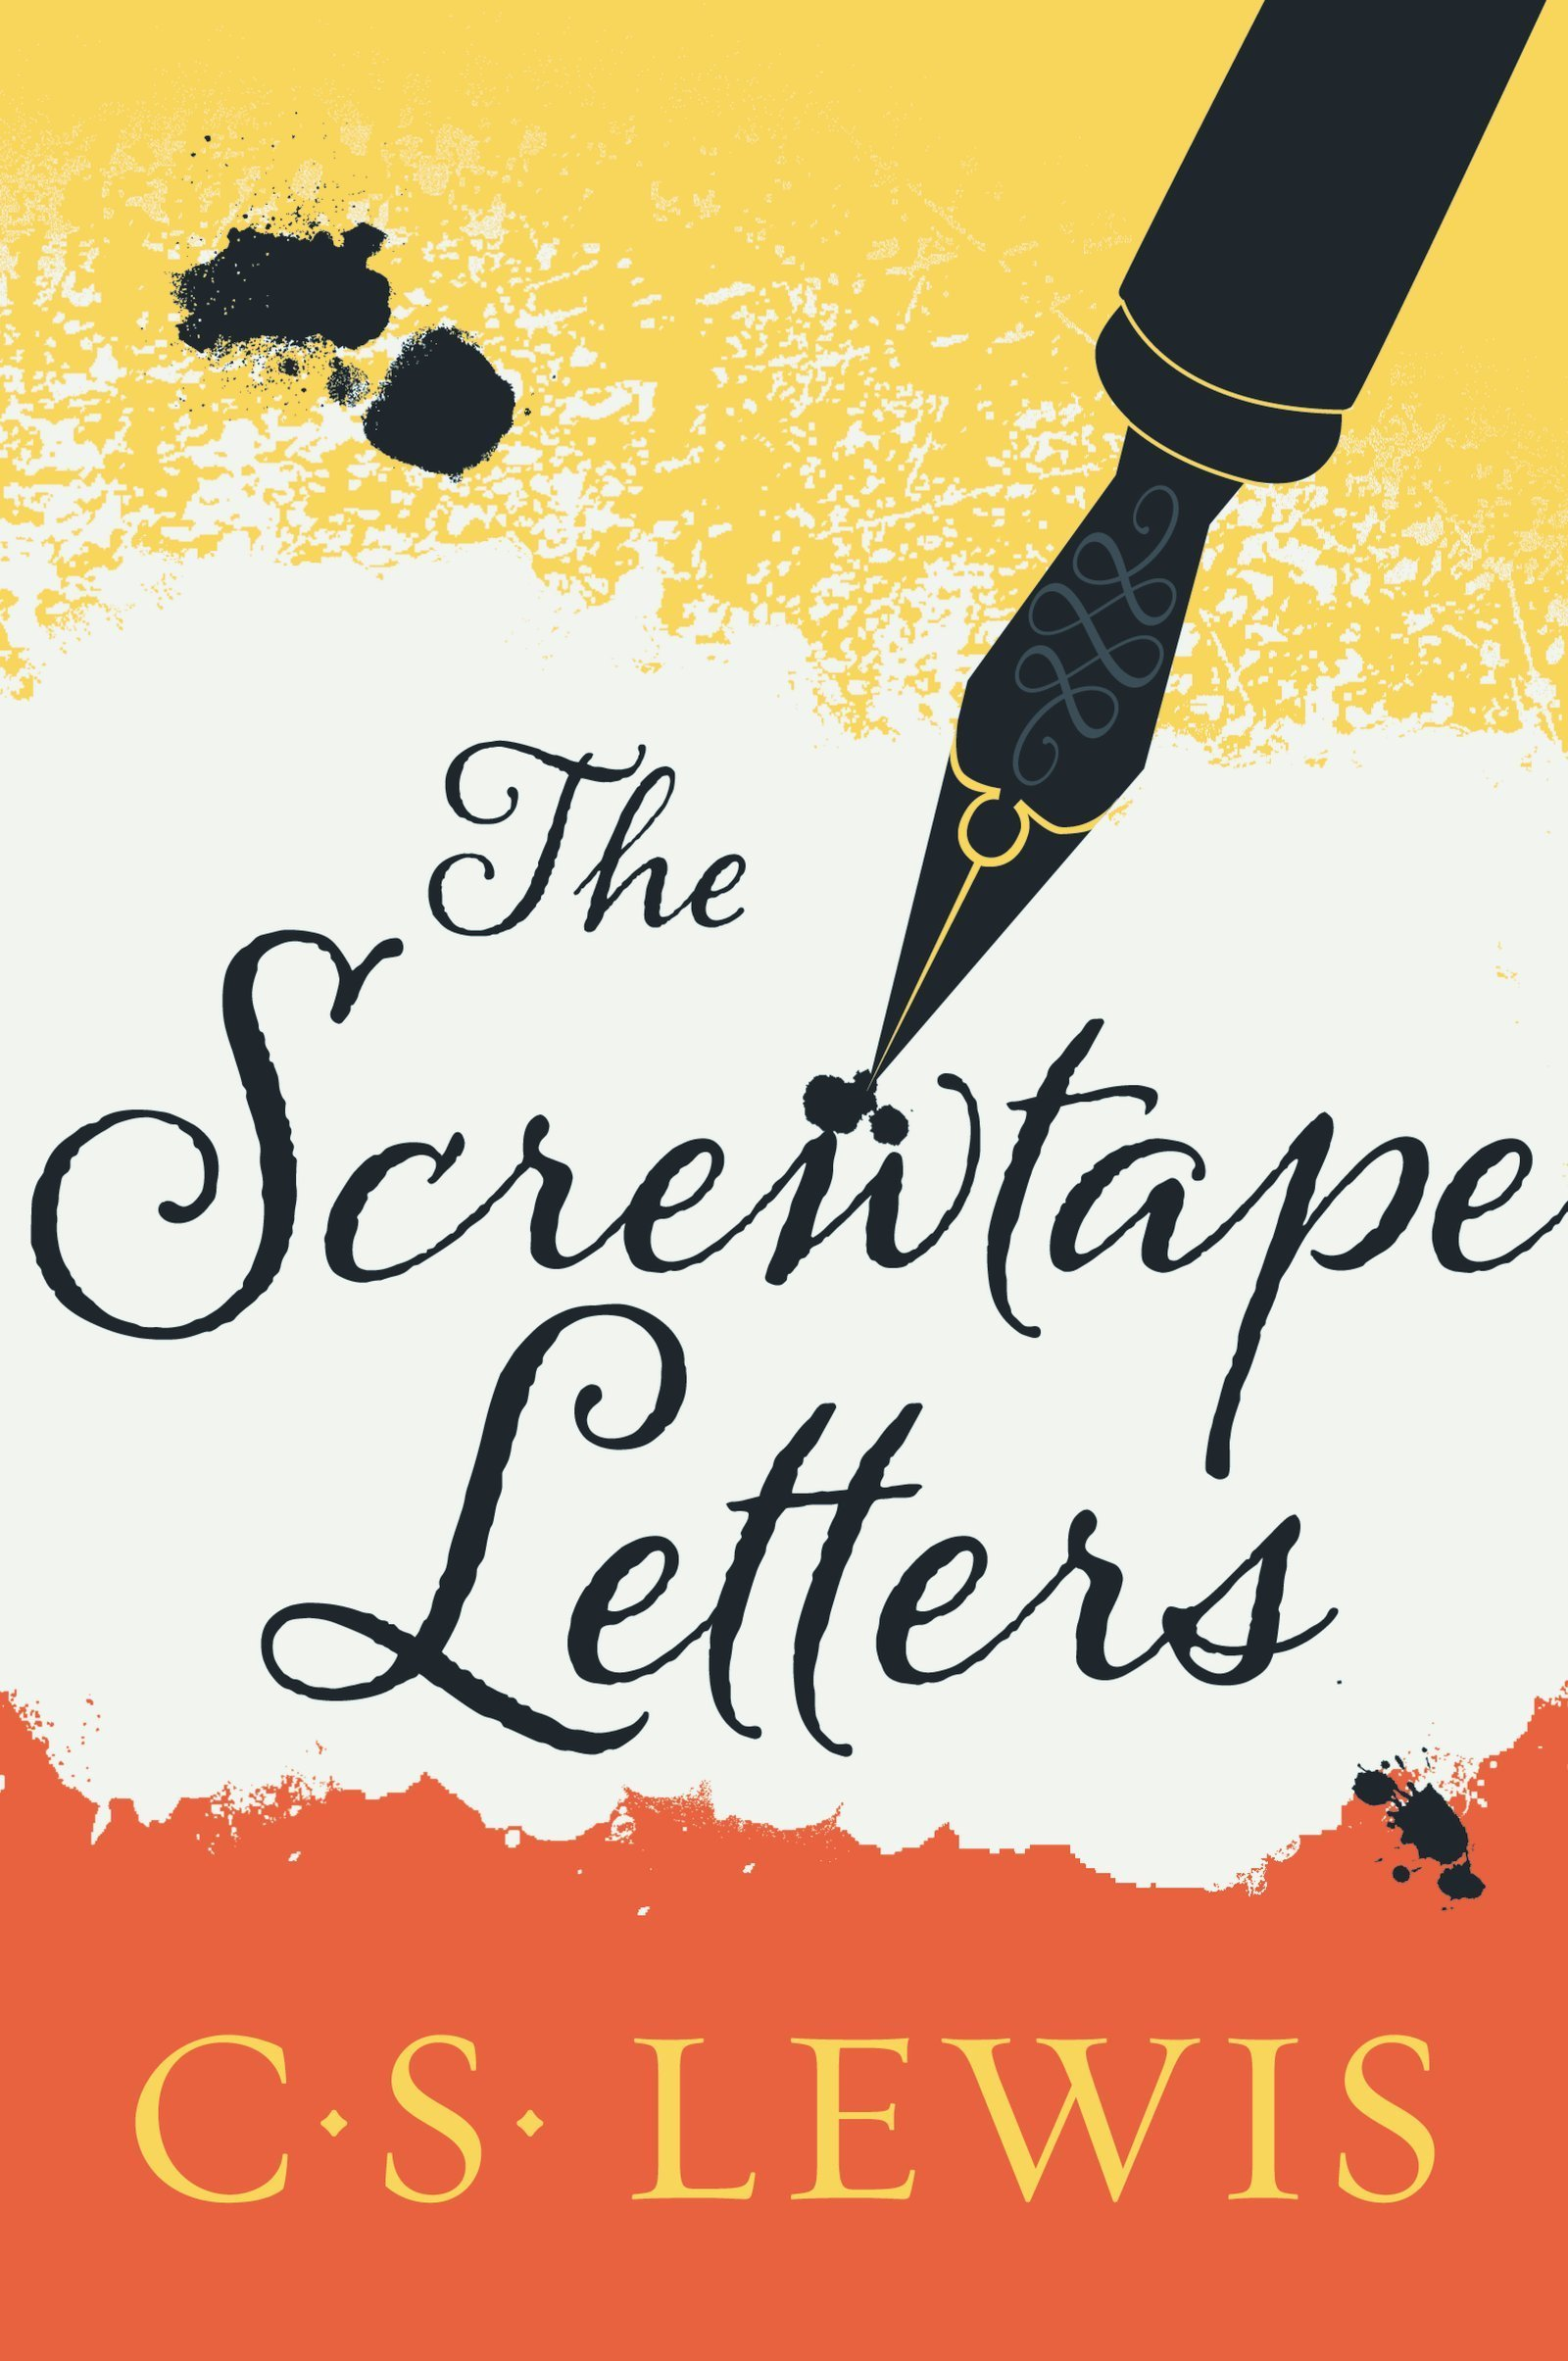 The Screwtape Letters: C. S. Lewis: 9780060652937: Amazon.com: Books